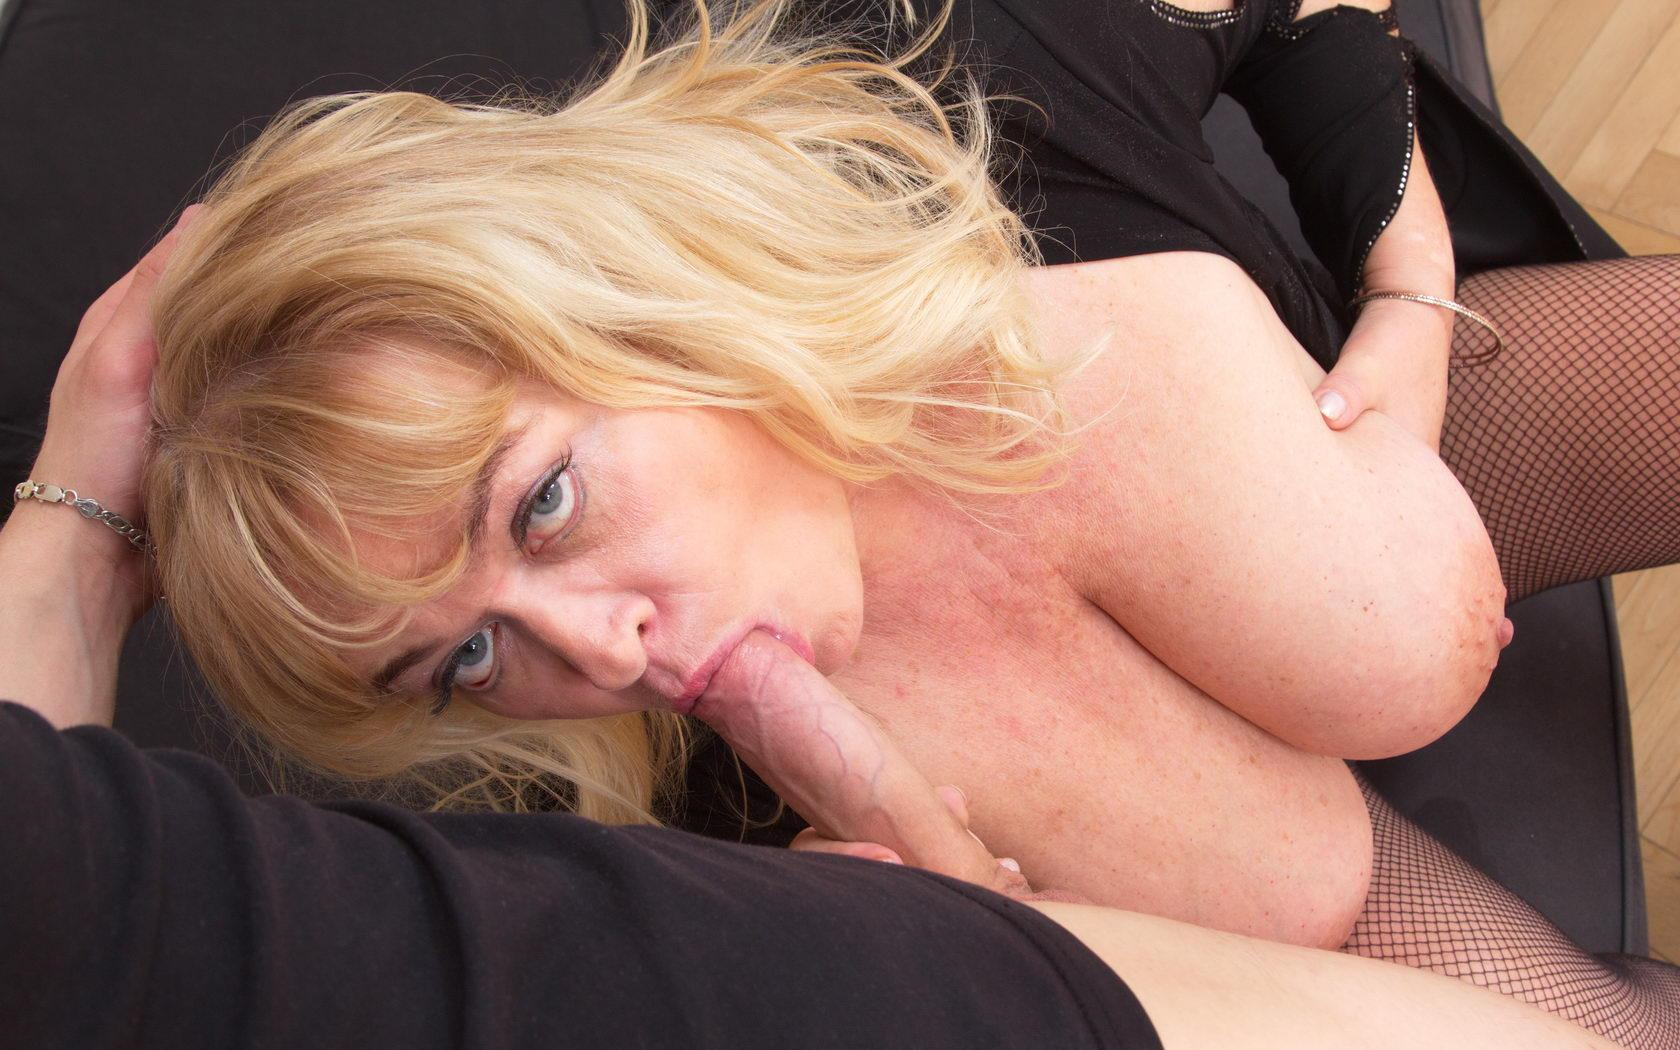 sweet granny mom likes to take it all over her kinky body